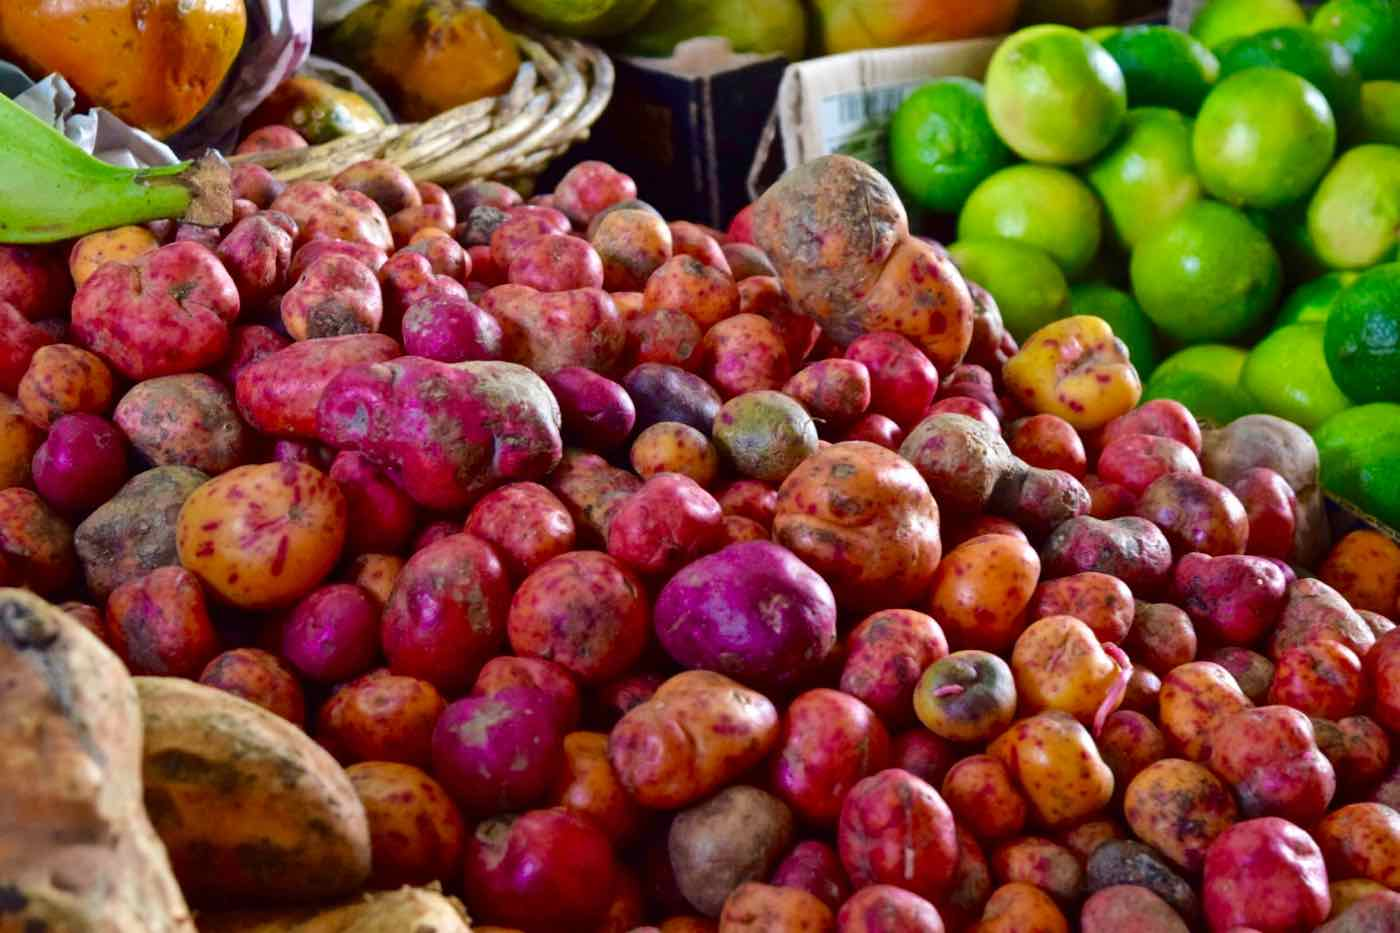 Amazing colourful potatoes in Santiago's Central Markets